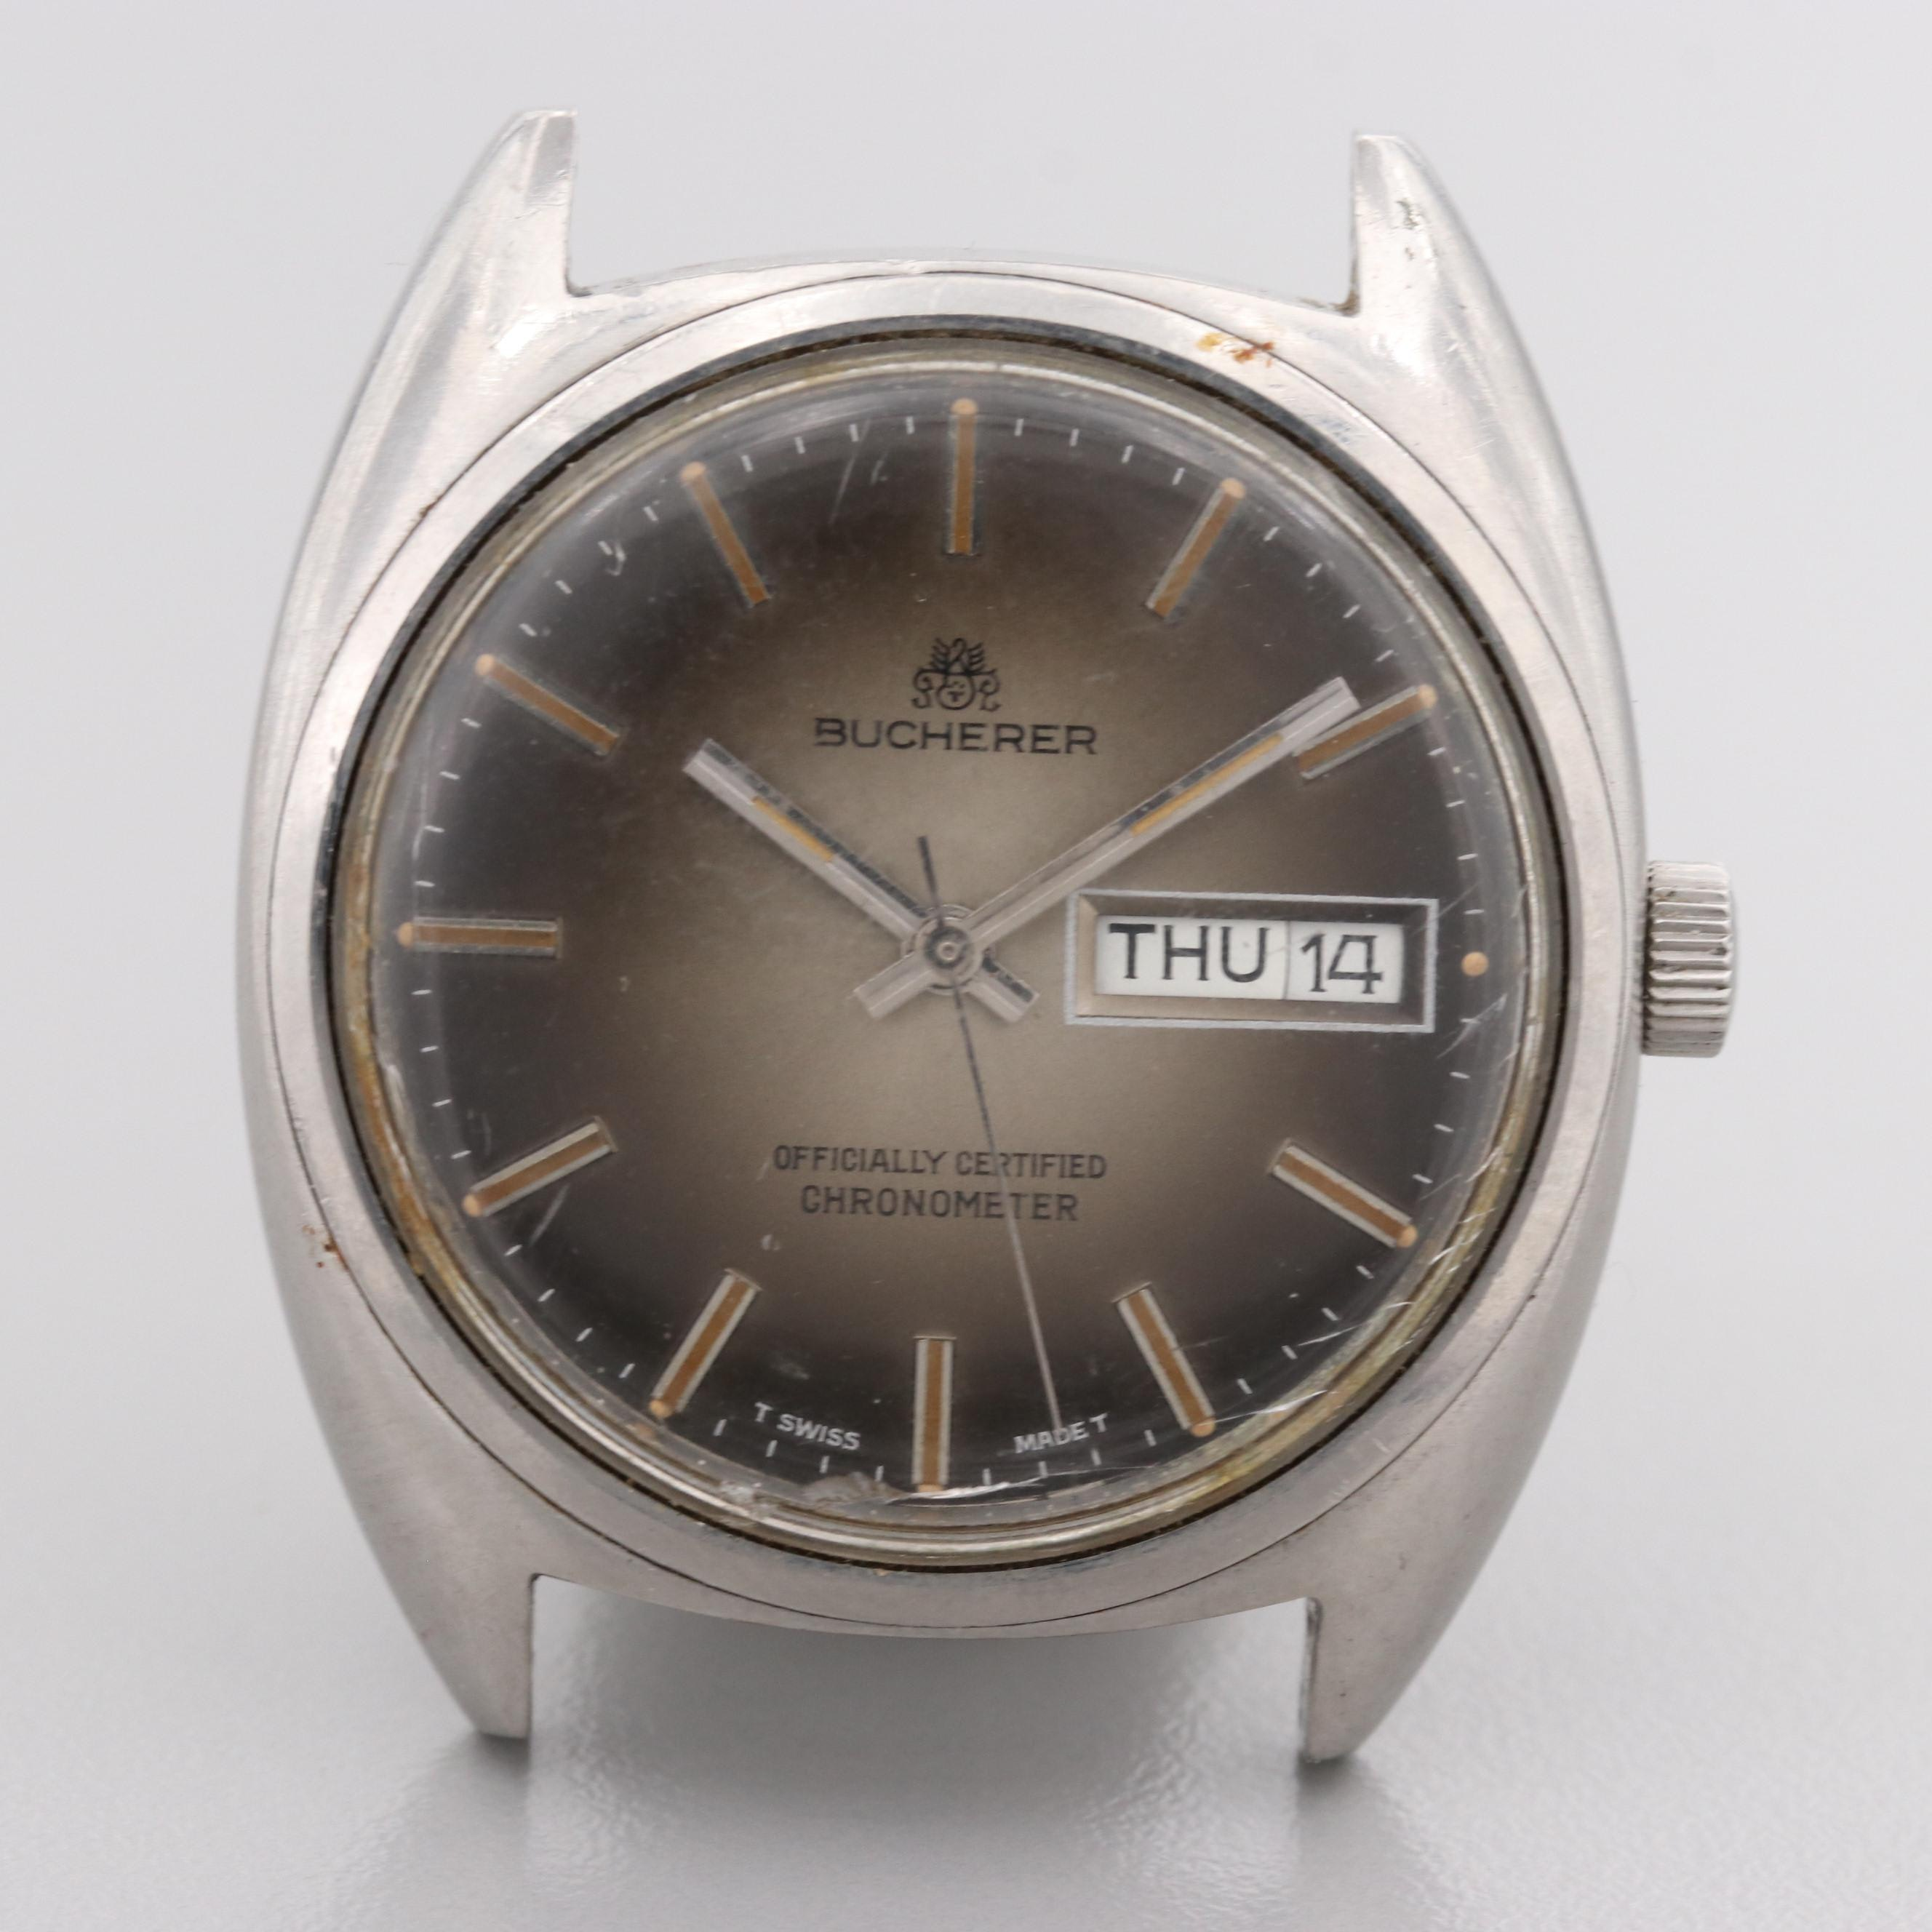 Vintage Bucherer Stainless Steel Automatic Wristwatch With Day and Date